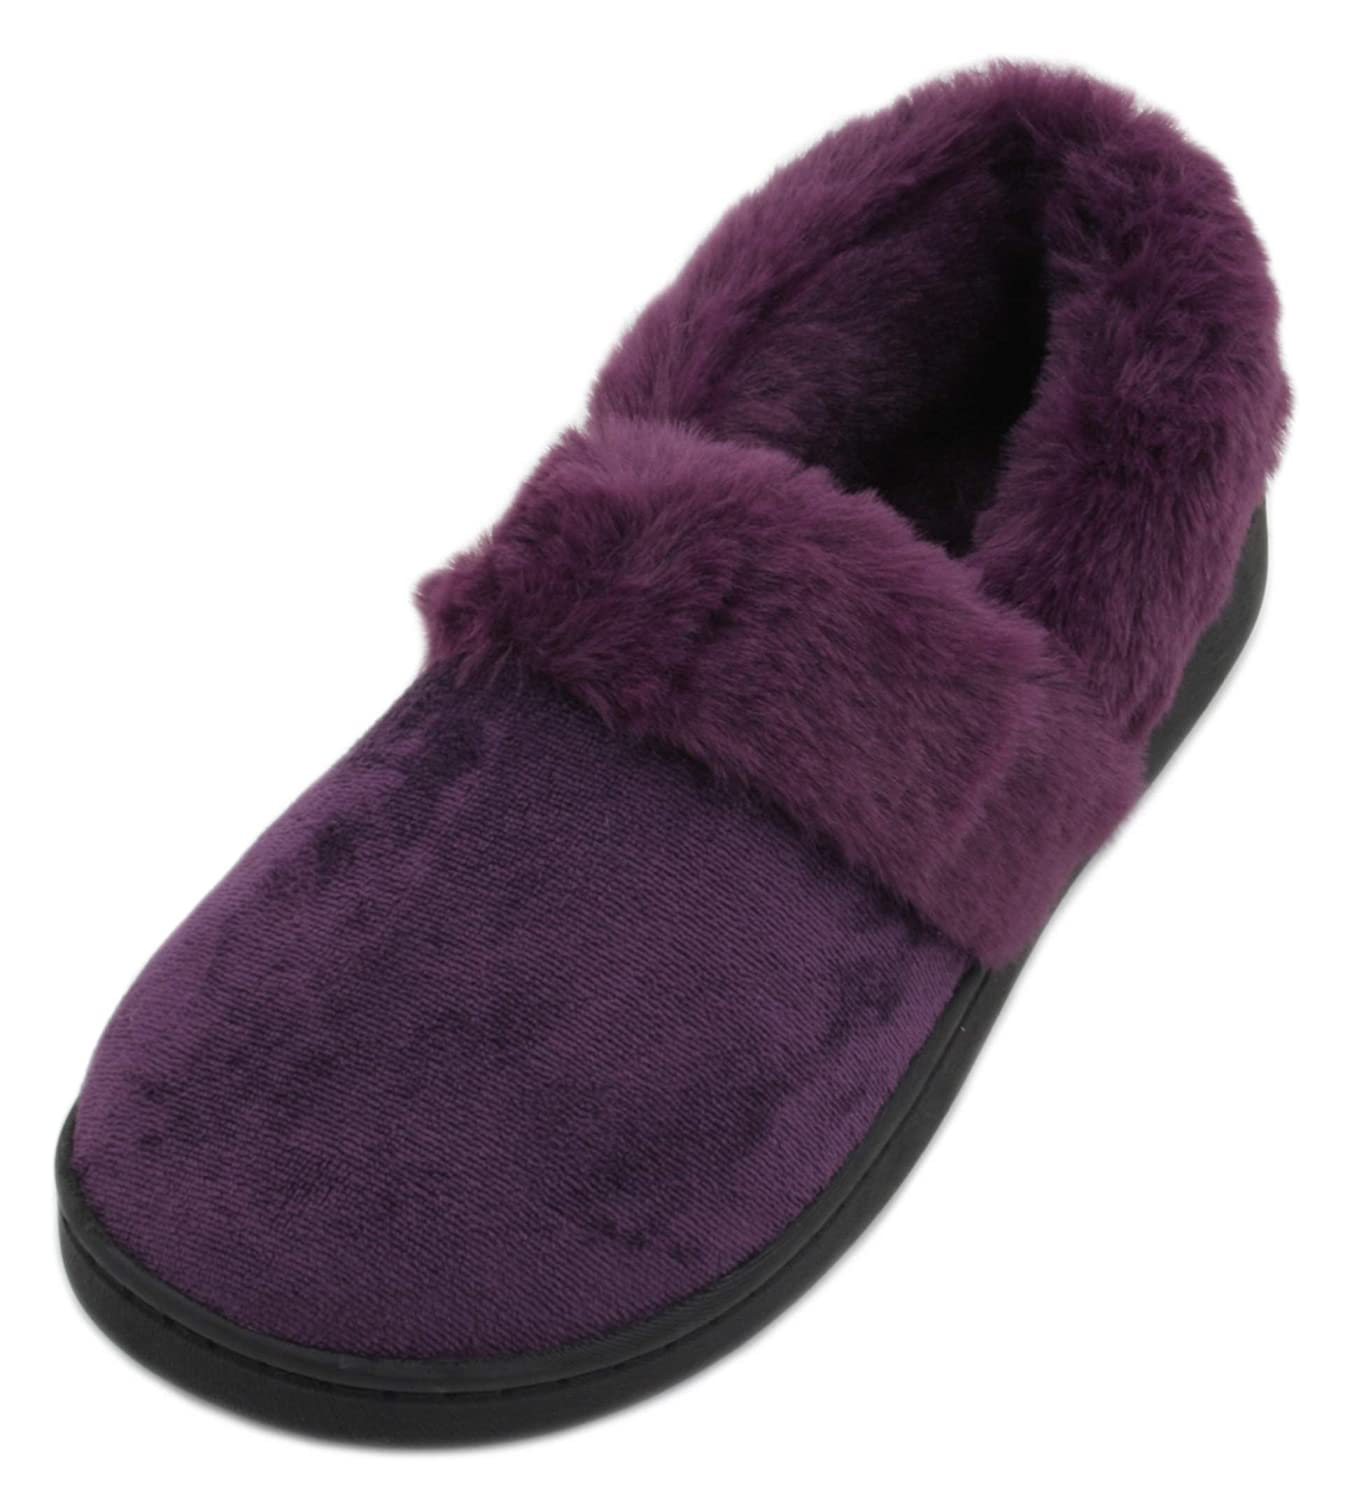 SlumberzzZ , B06XYMQTMD Chaussons pour Femme 13492 , Violet 4712249 - fast-weightloss-diet.space